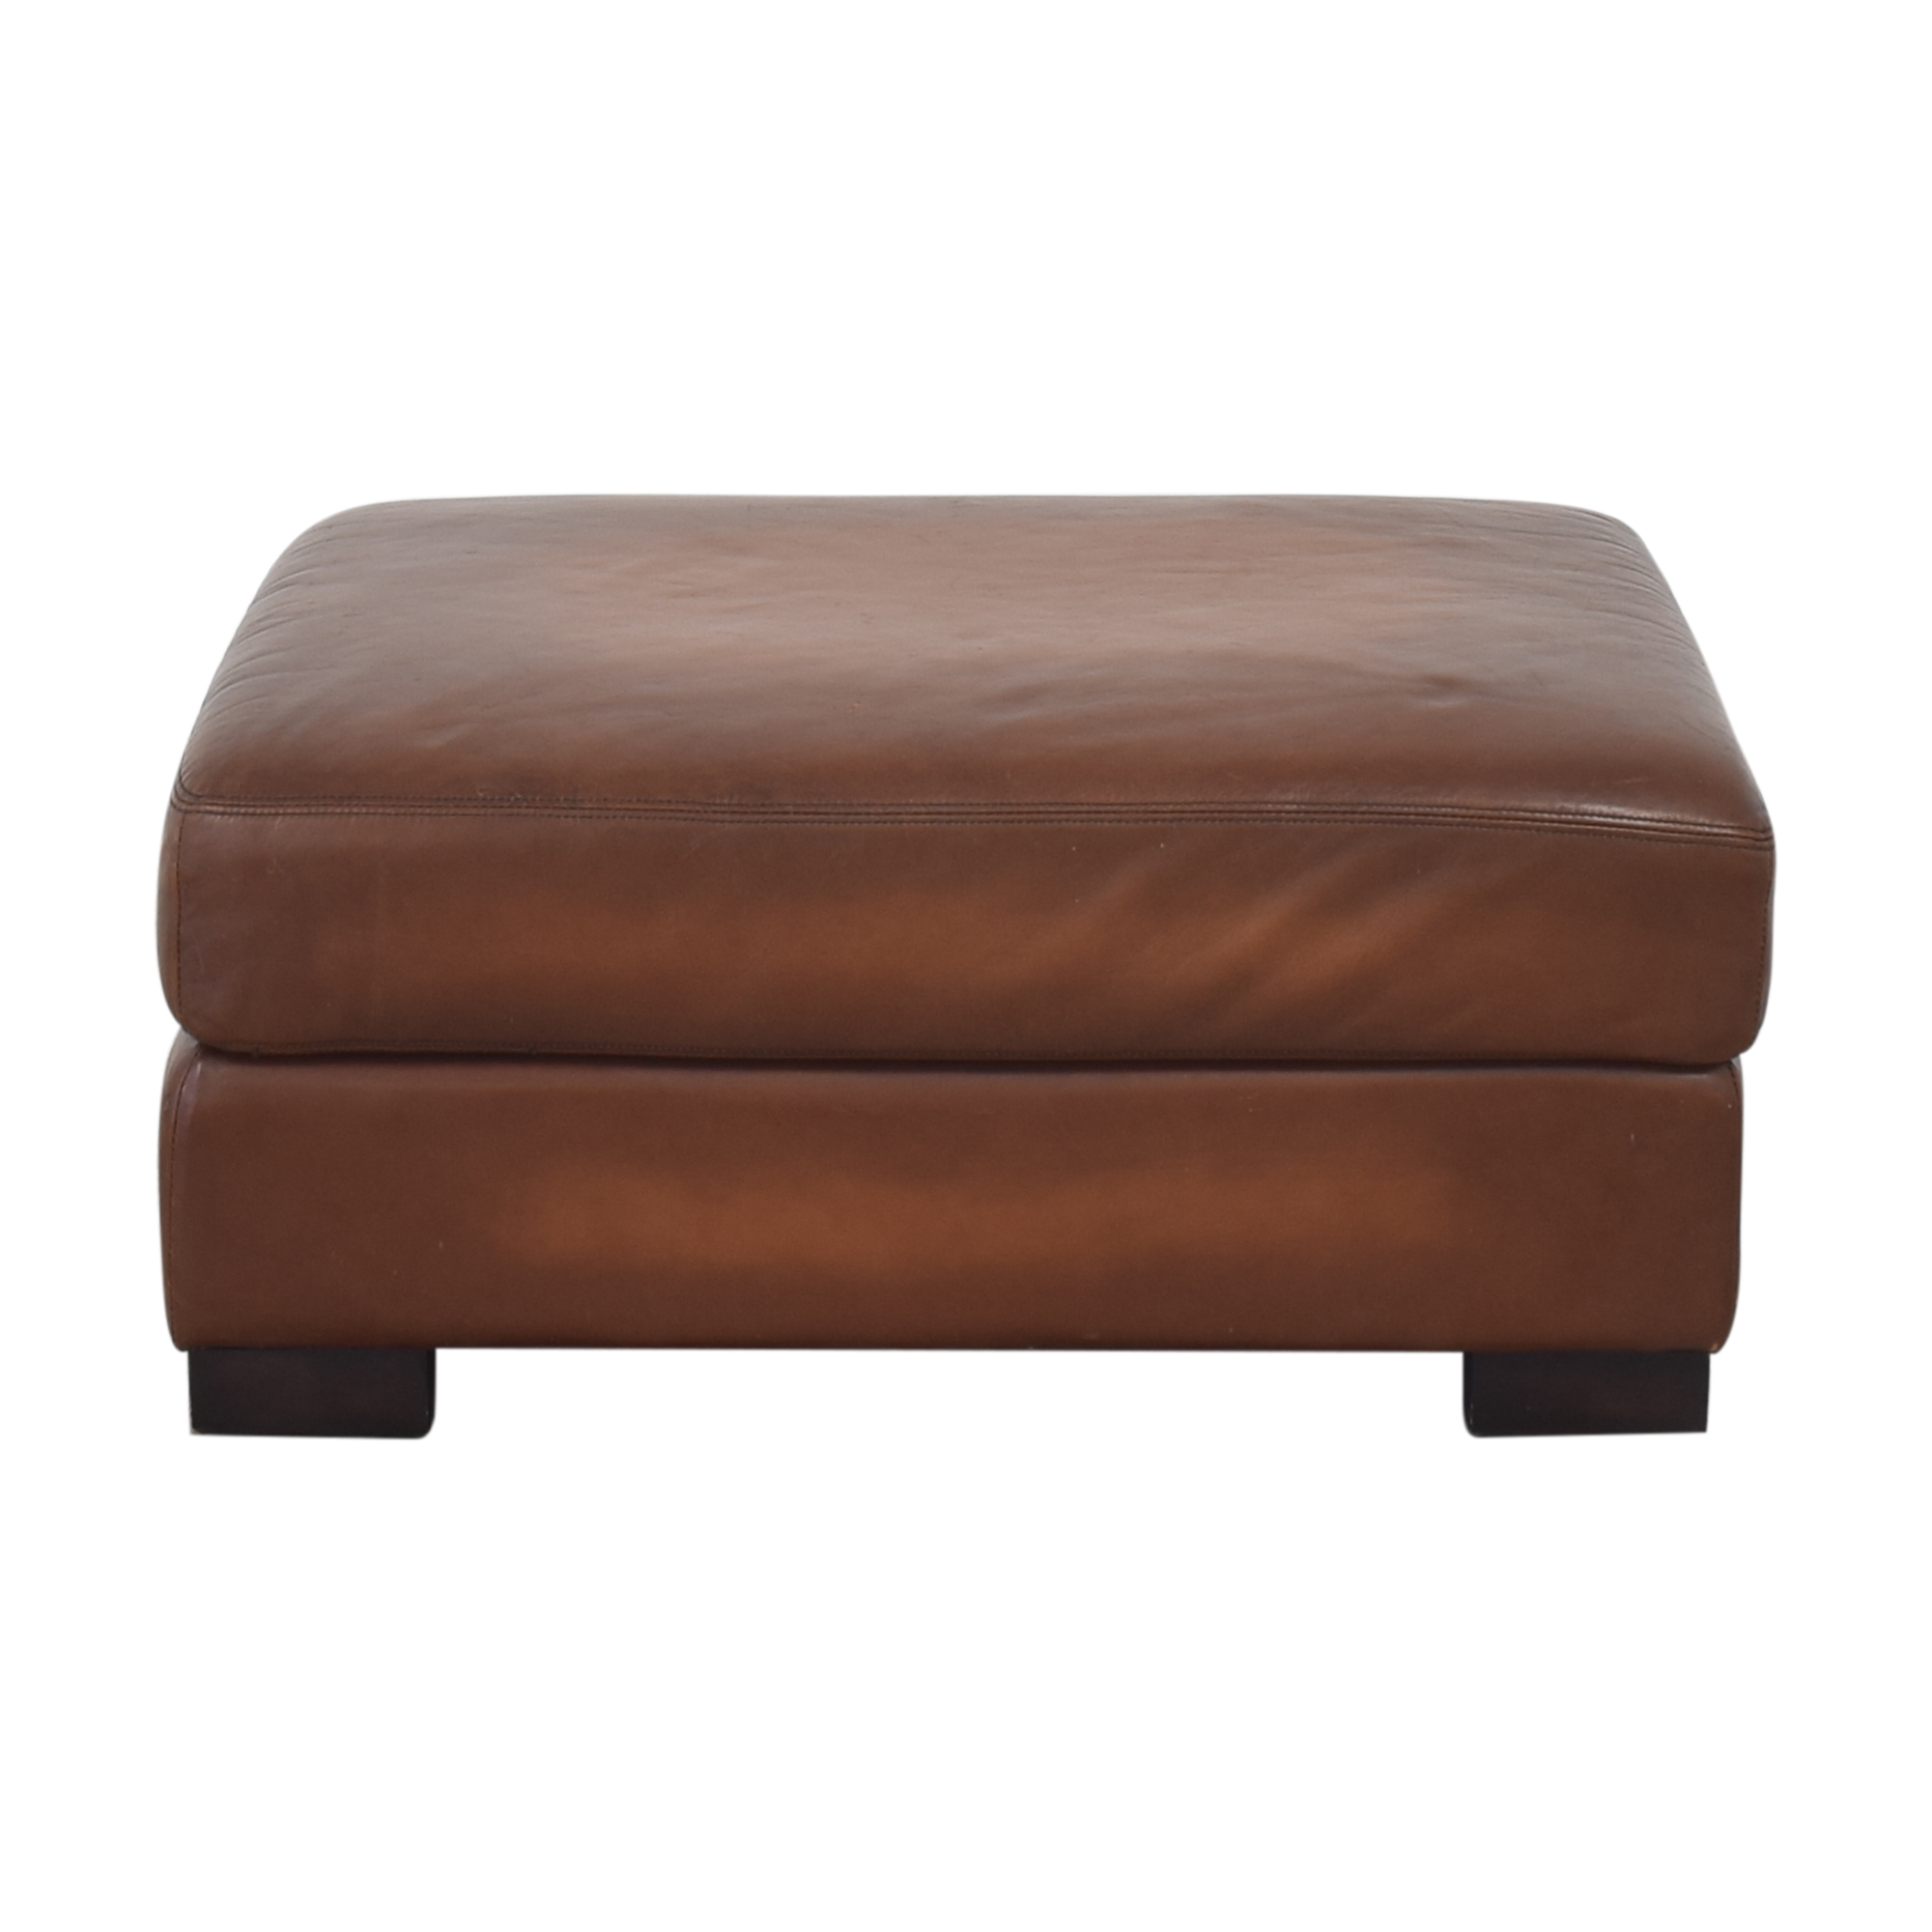 Pottery Barn Pottery Barn Turner Ottoman for sale